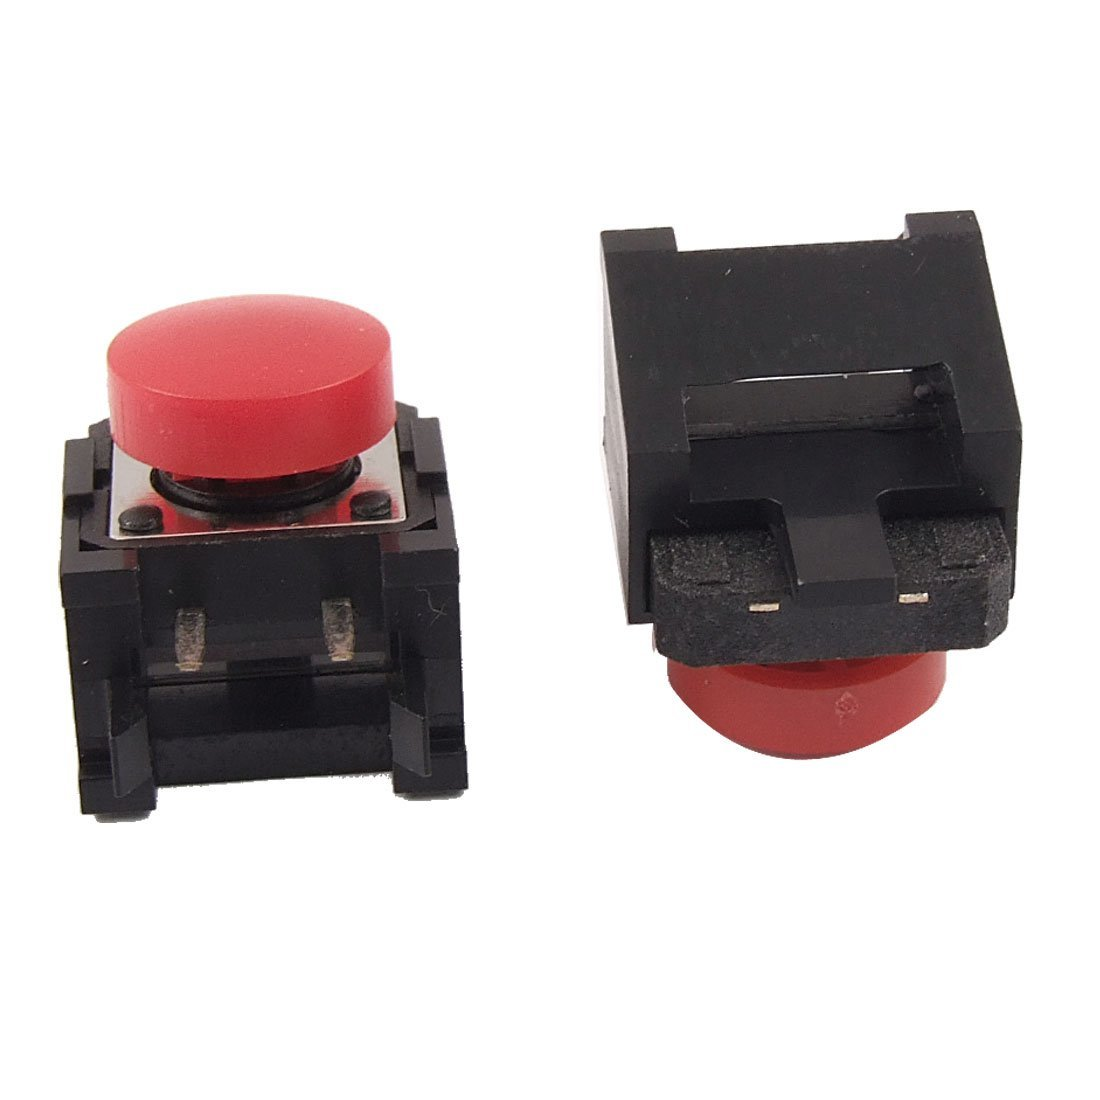 Uxcell Momentary Tactile/Push Button Switch, 12 x 12 x 8mm